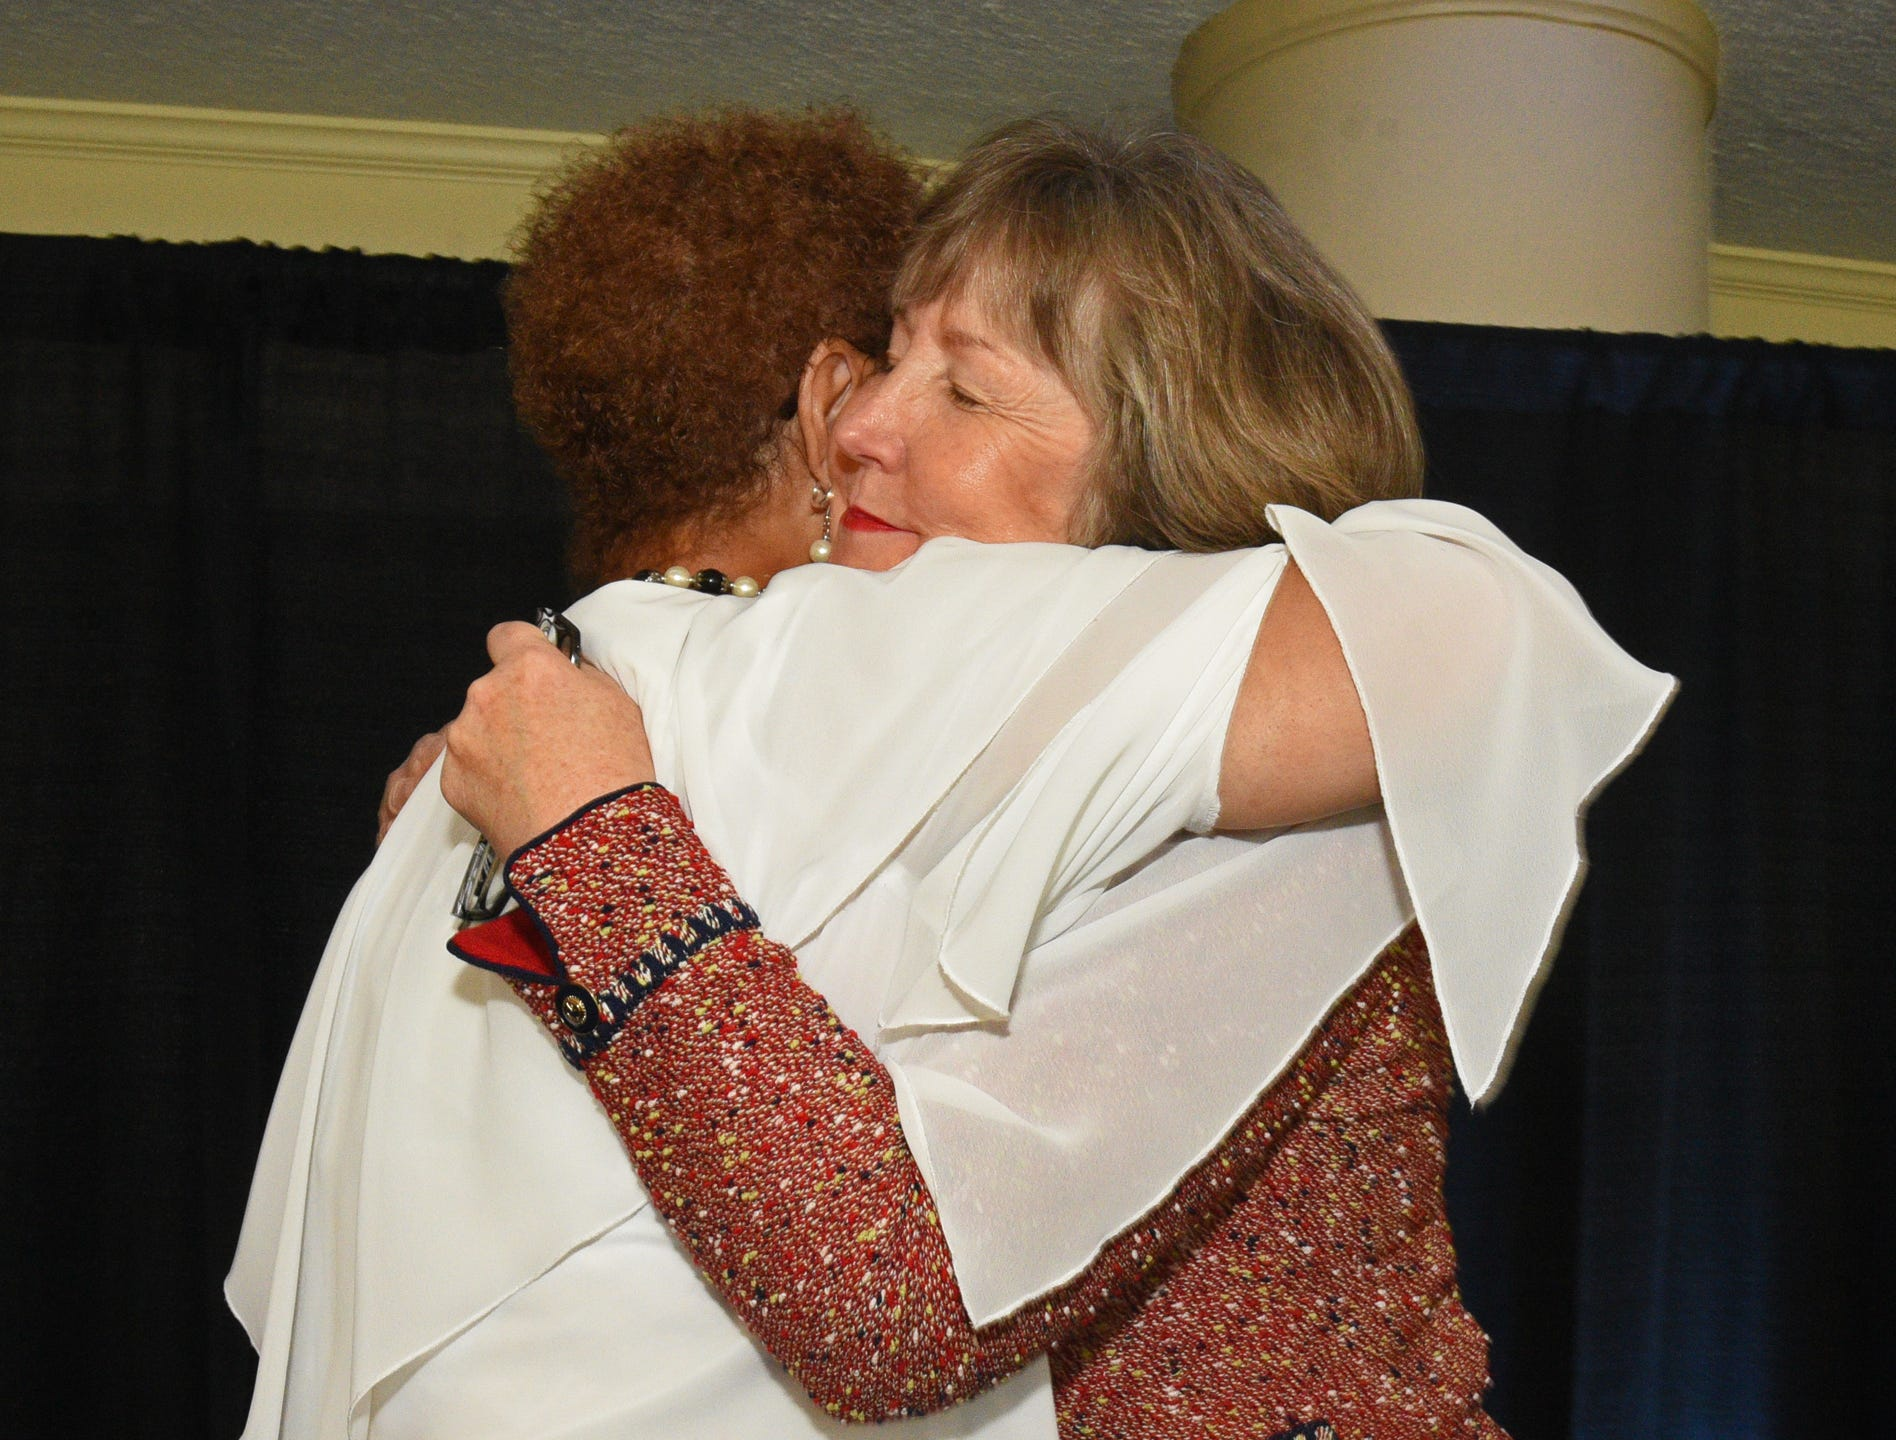 The 2018 Virginia K. Shehee Most Influential Woman Award. Photo by Stan Carpenter